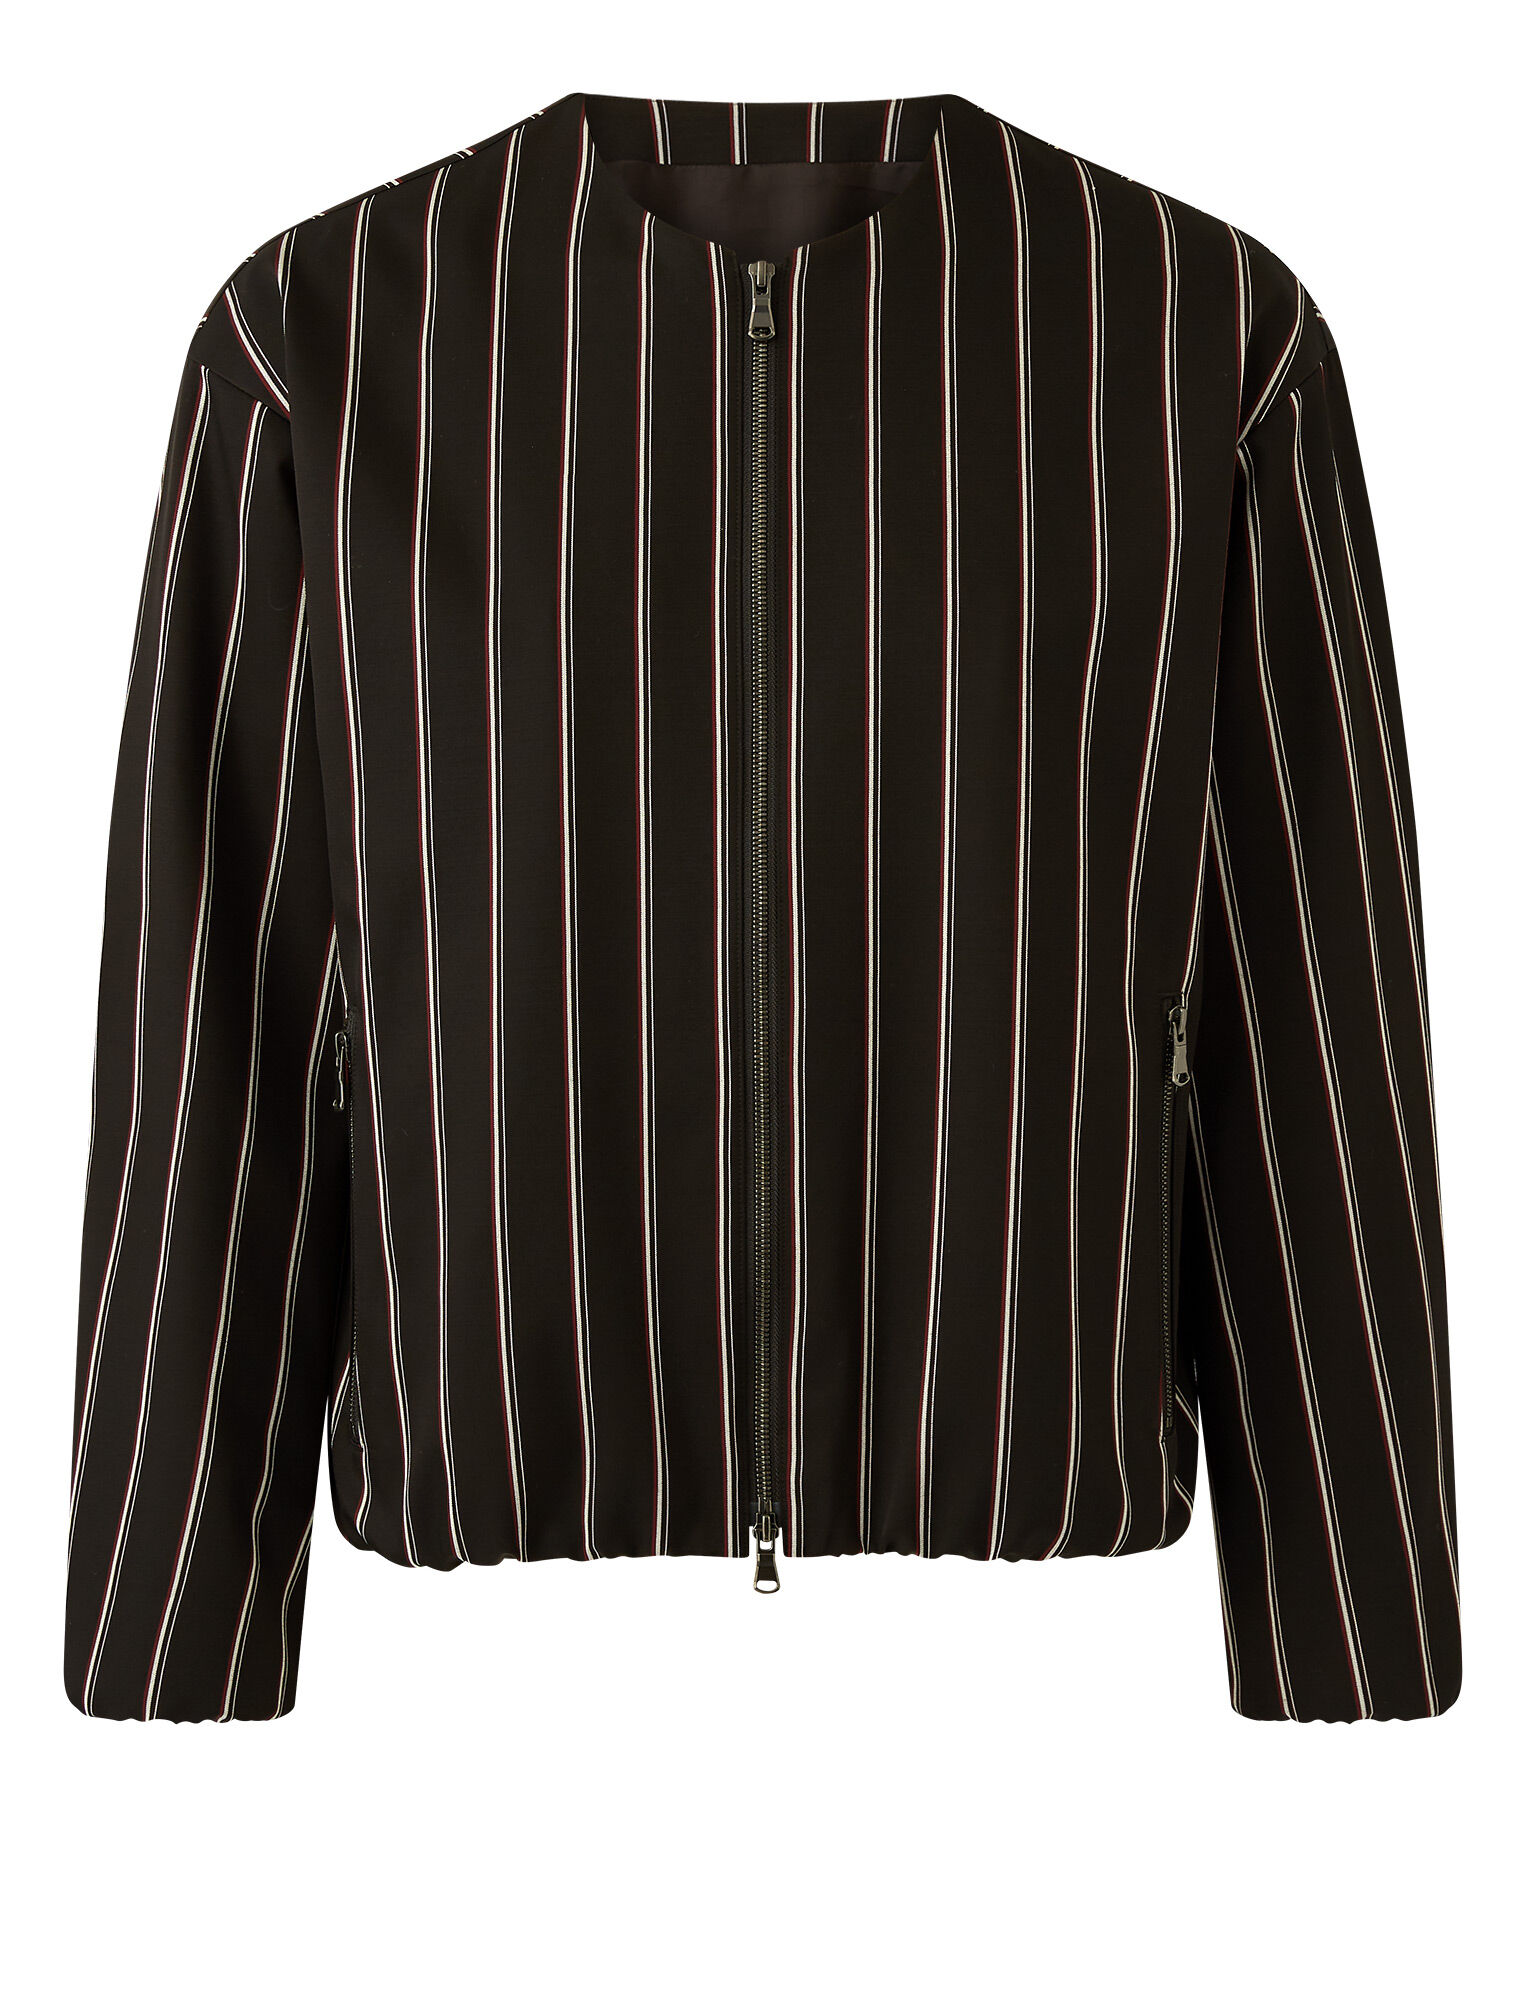 Joseph, Viscose Wool Stripe Jacket, in Black